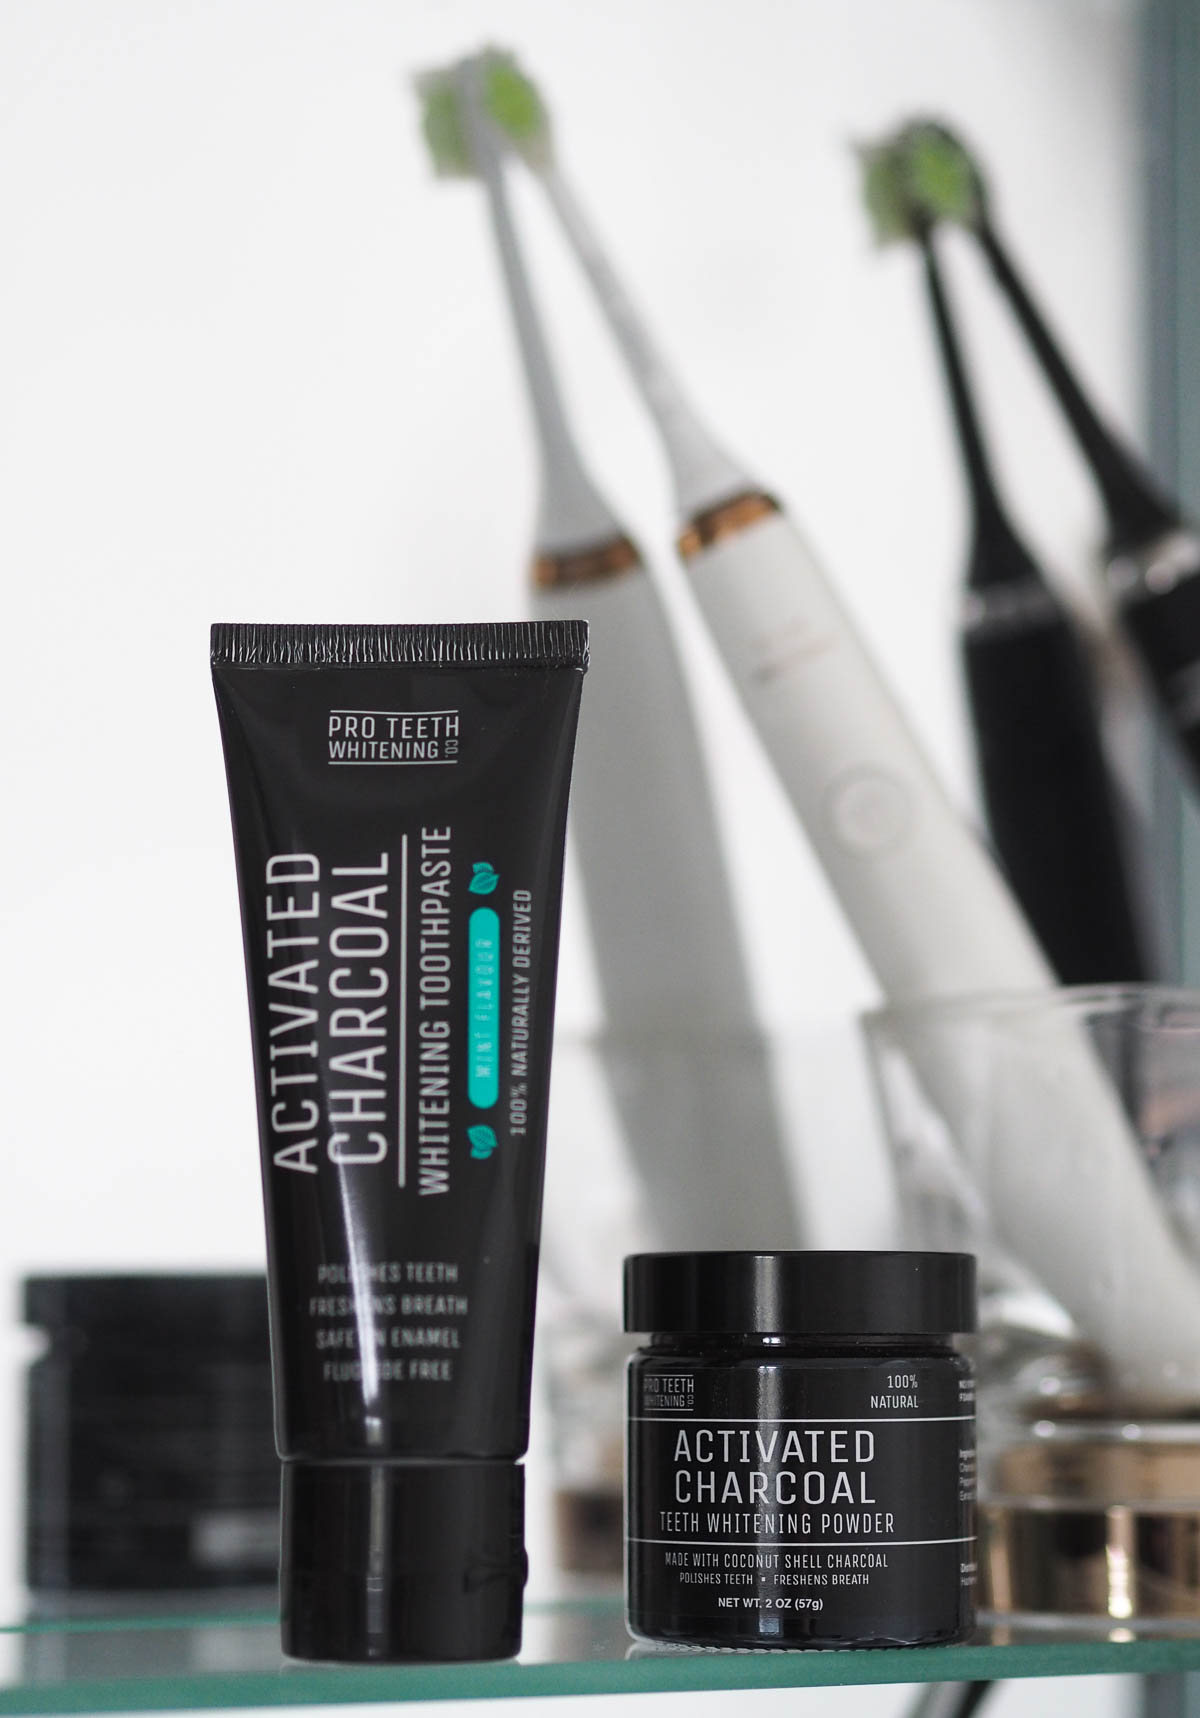 Pro Teeth Whitening Co Activated Charcoal Toothpaste Powder